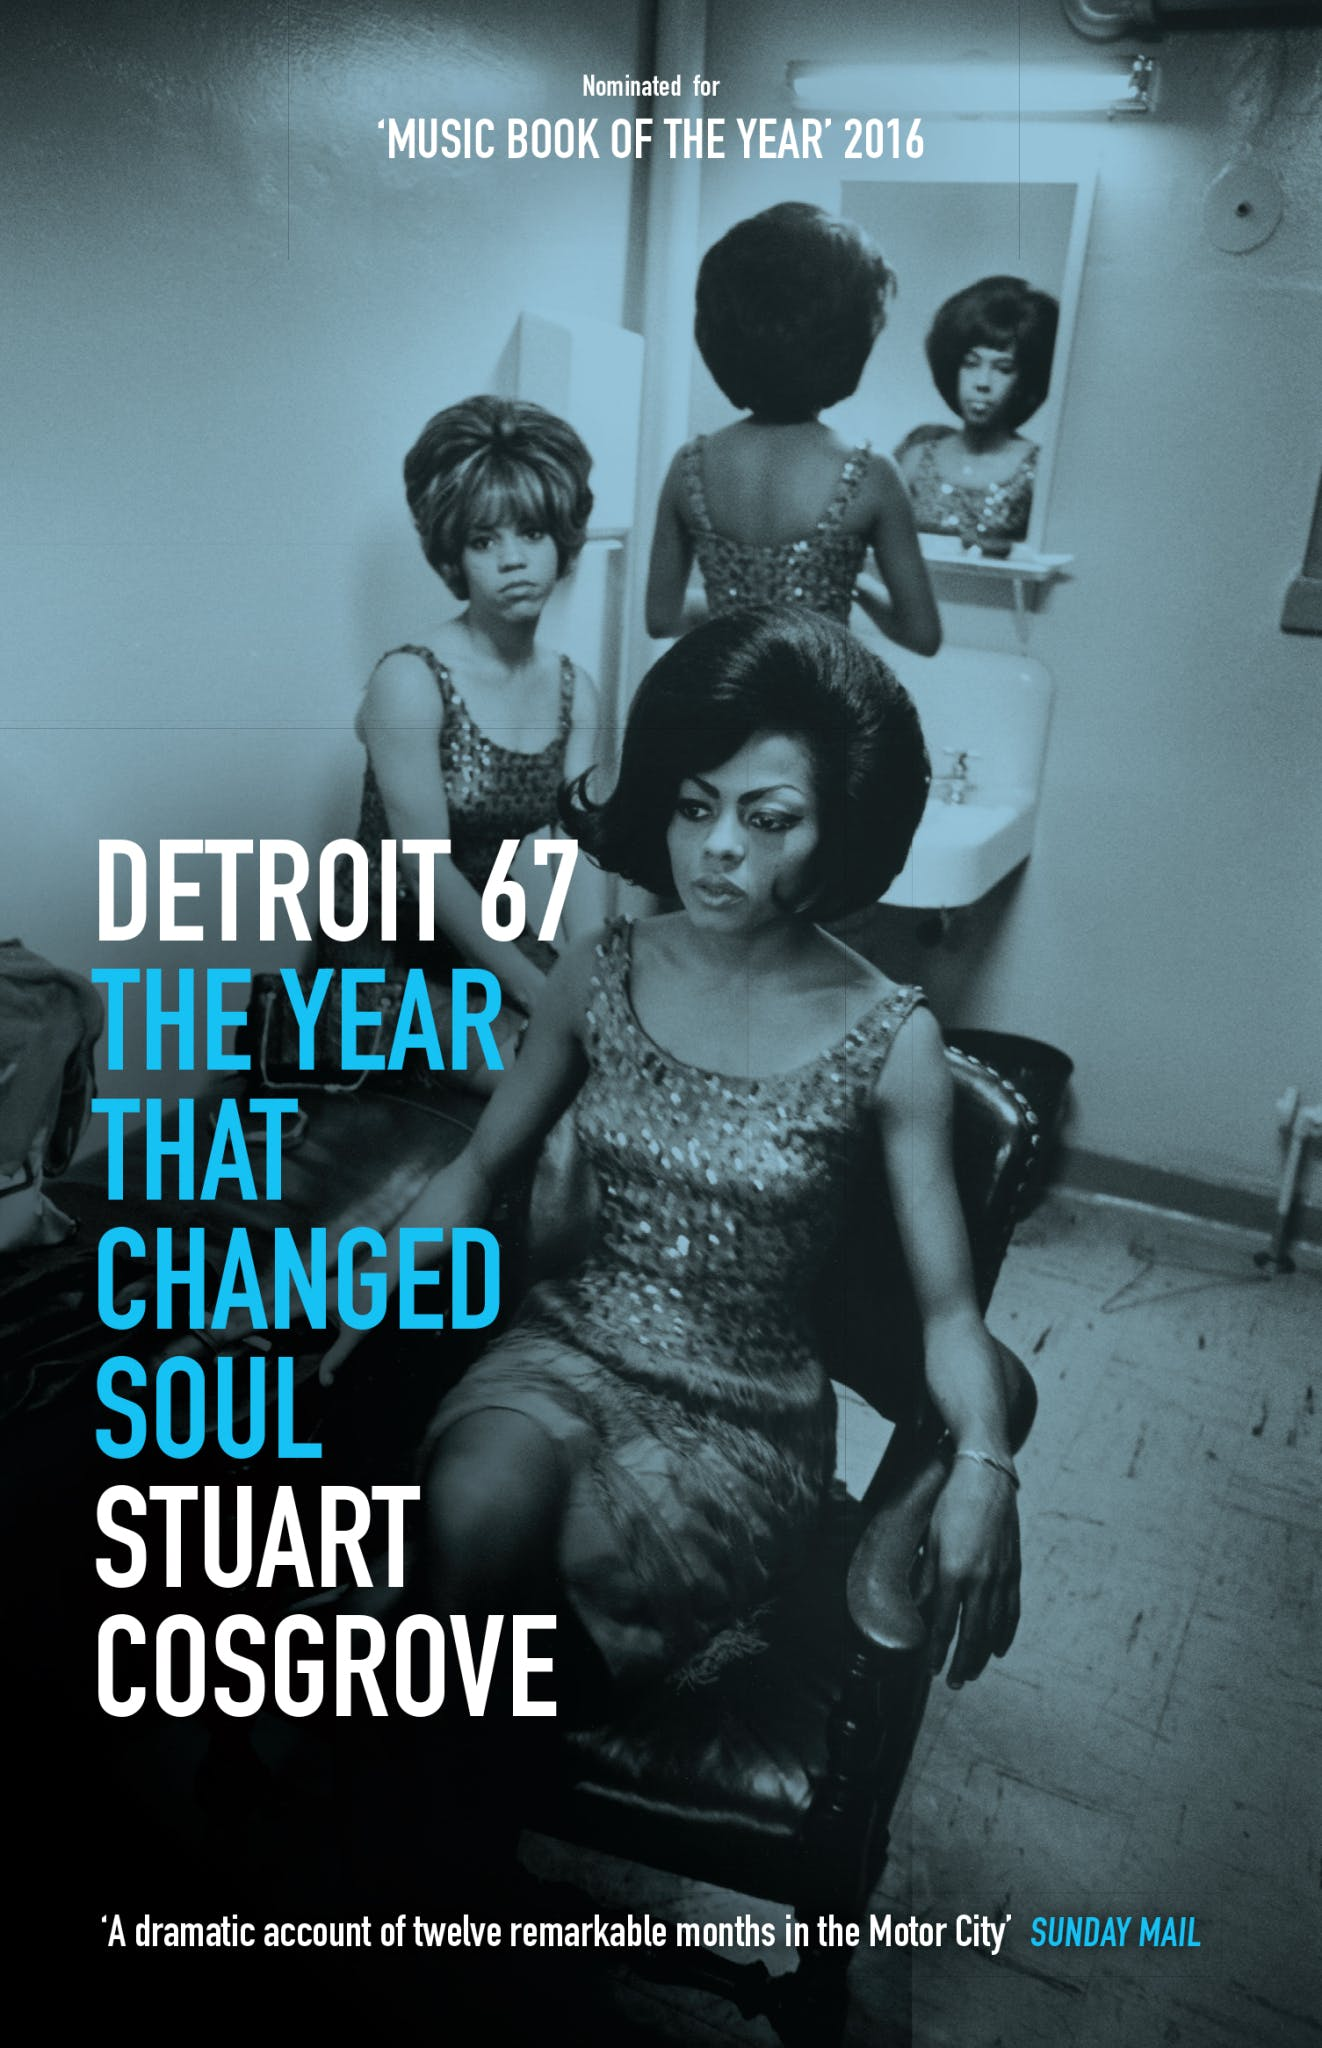 Detroit 67 is published by Polygon Books at £9.99